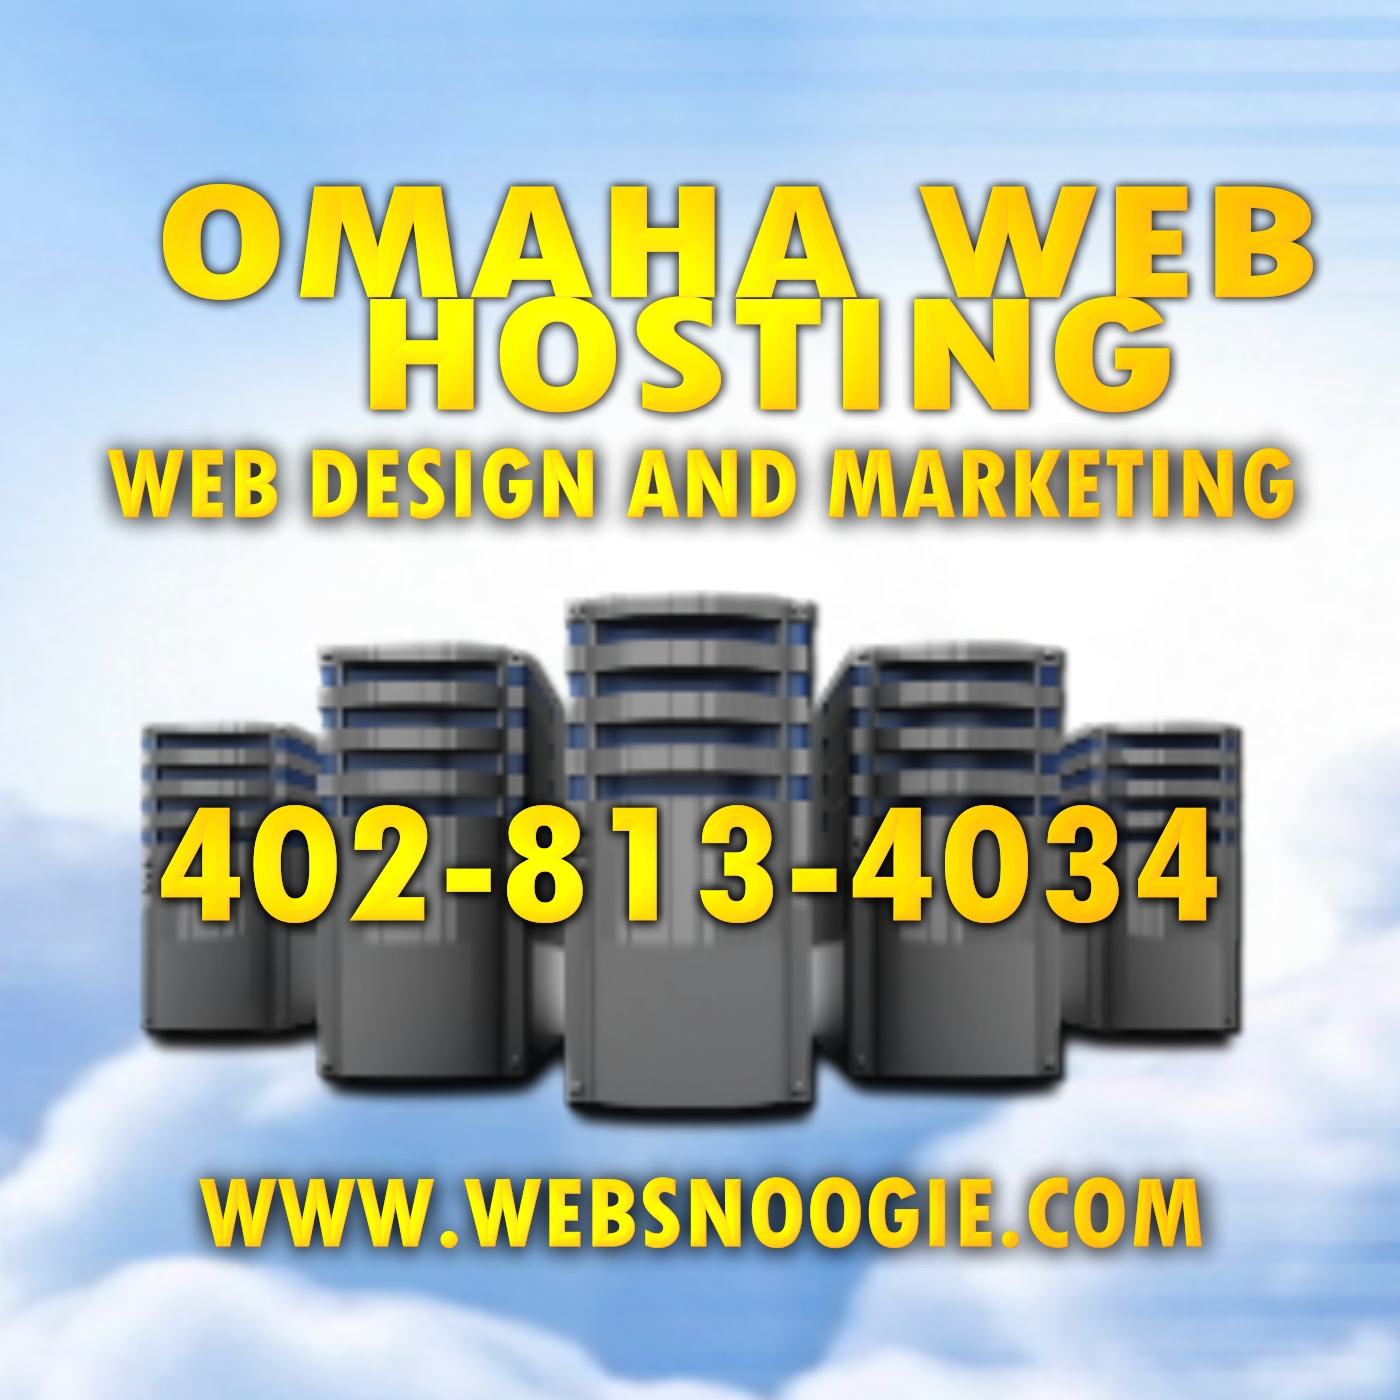 Websnoogie, LLC